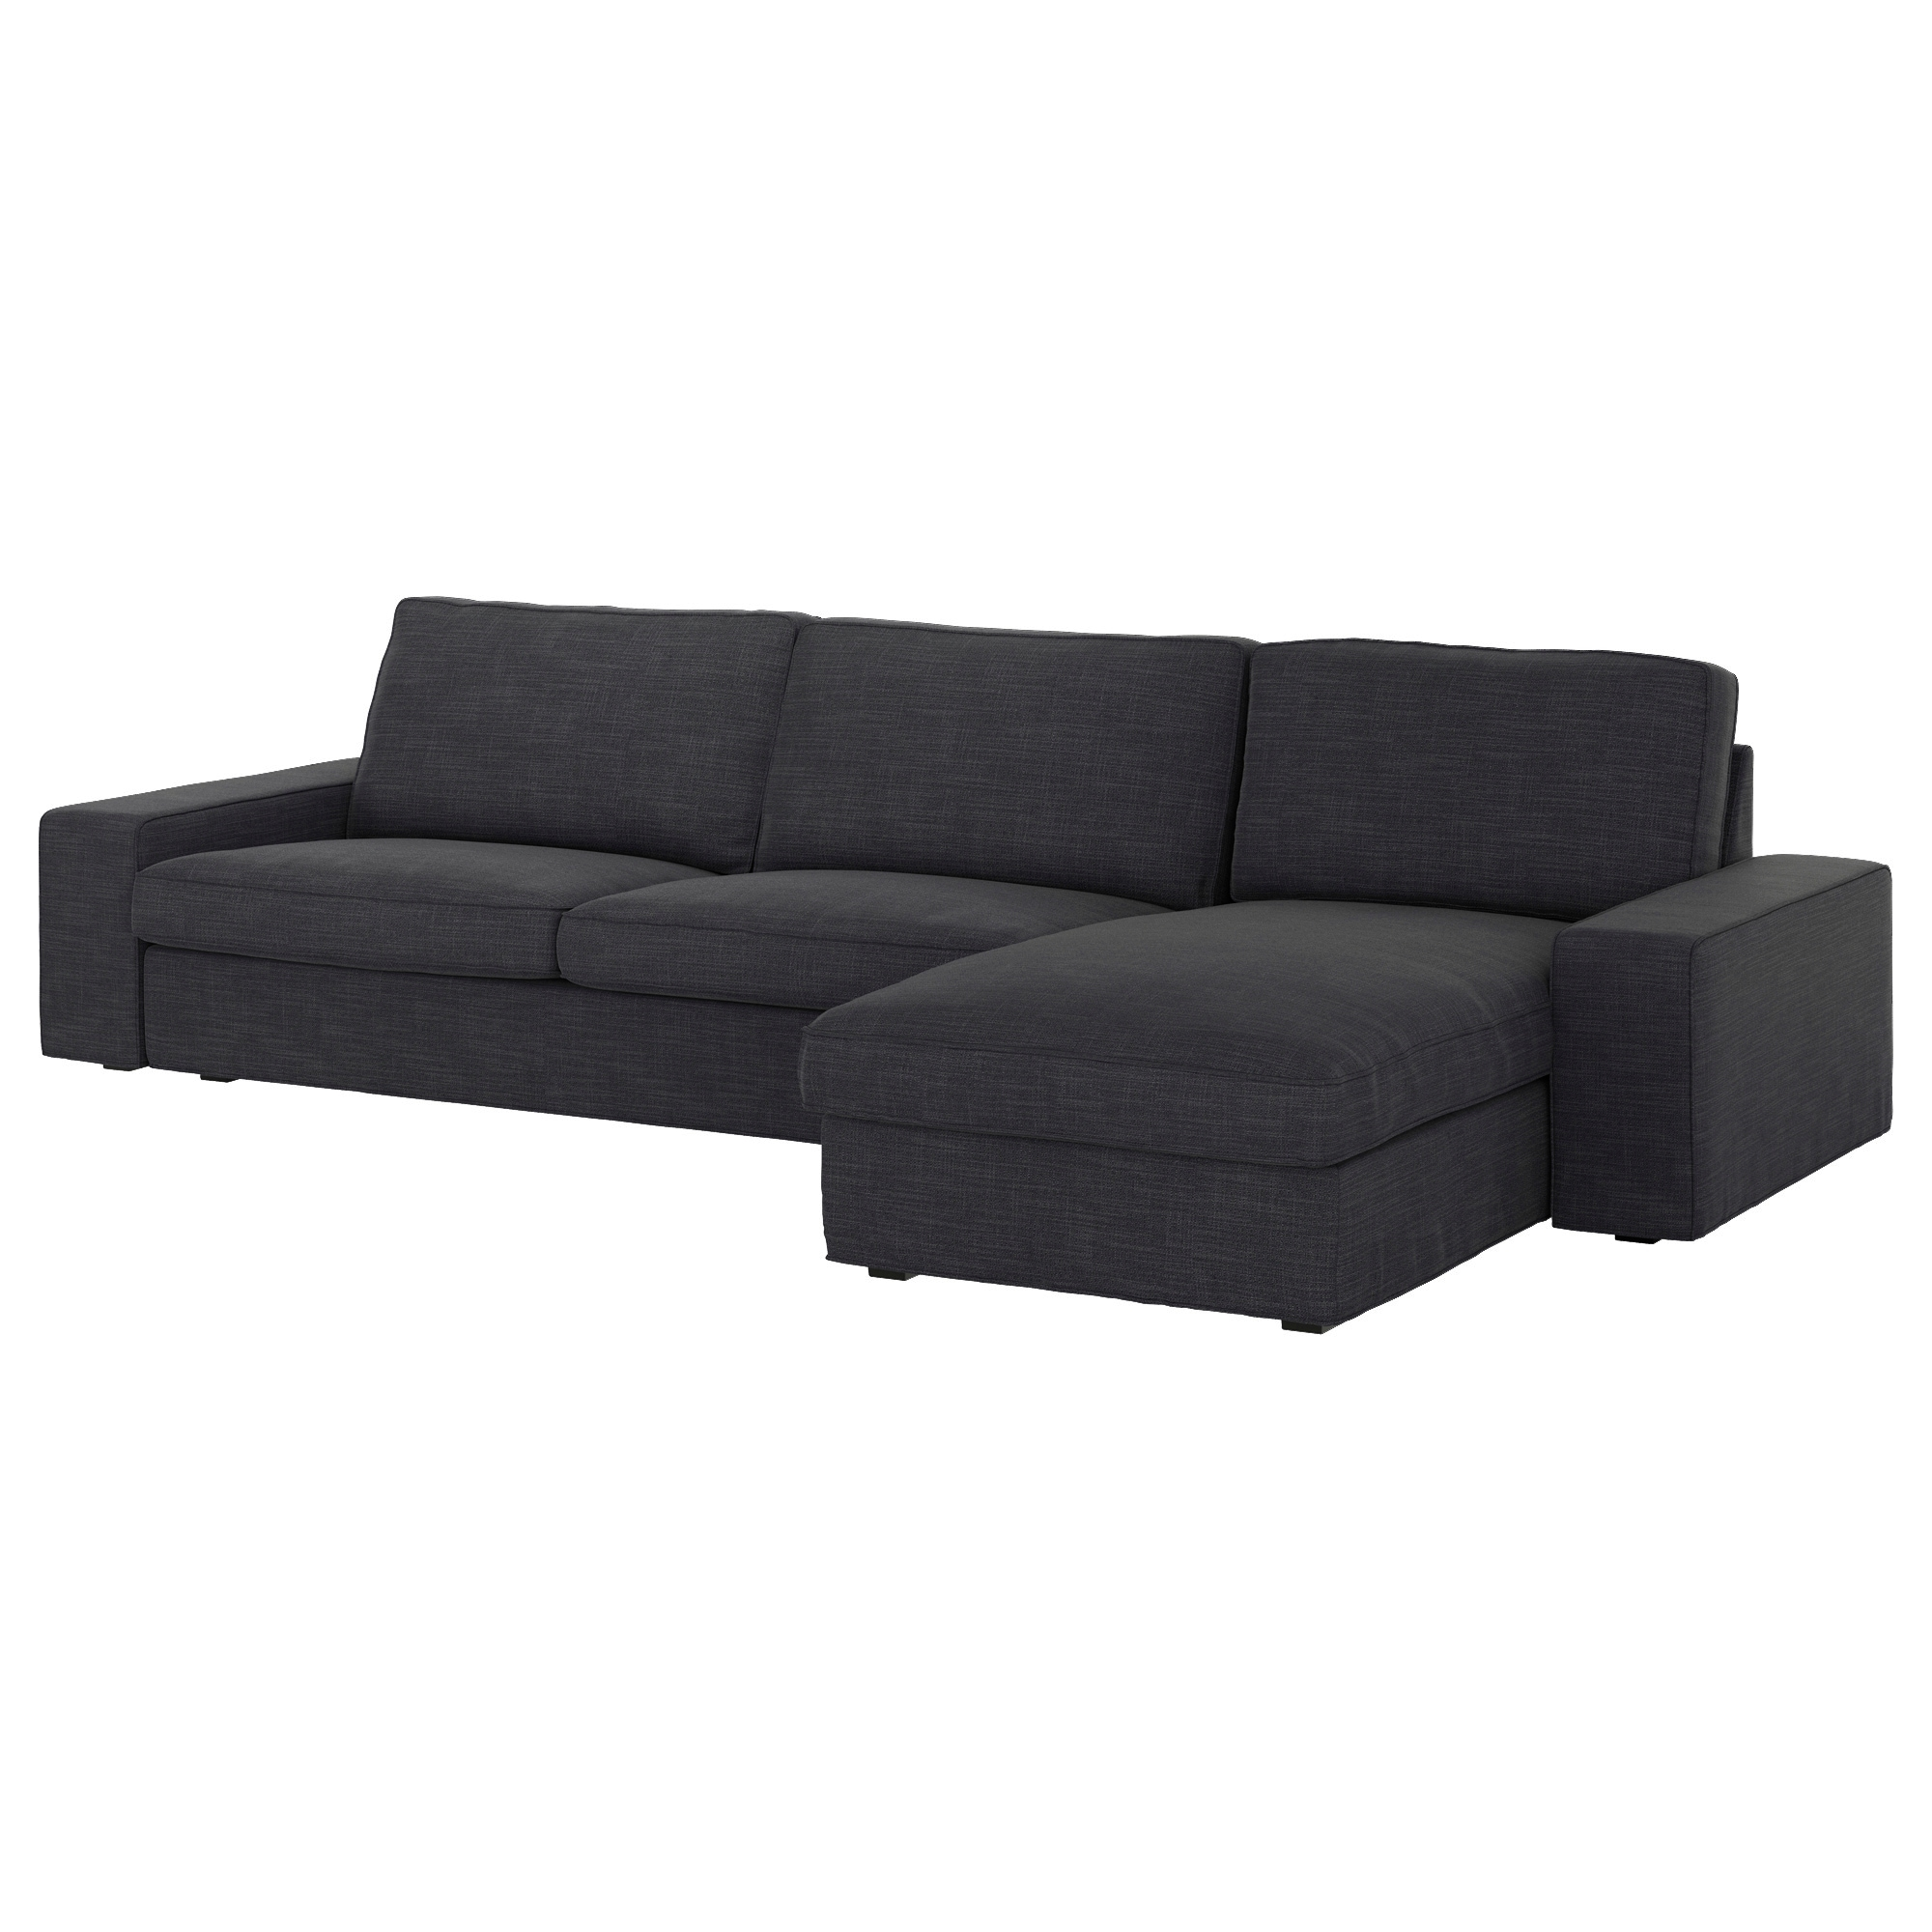 Liquidation sofa montreal refil sofa for Sofa modulaire liquidation